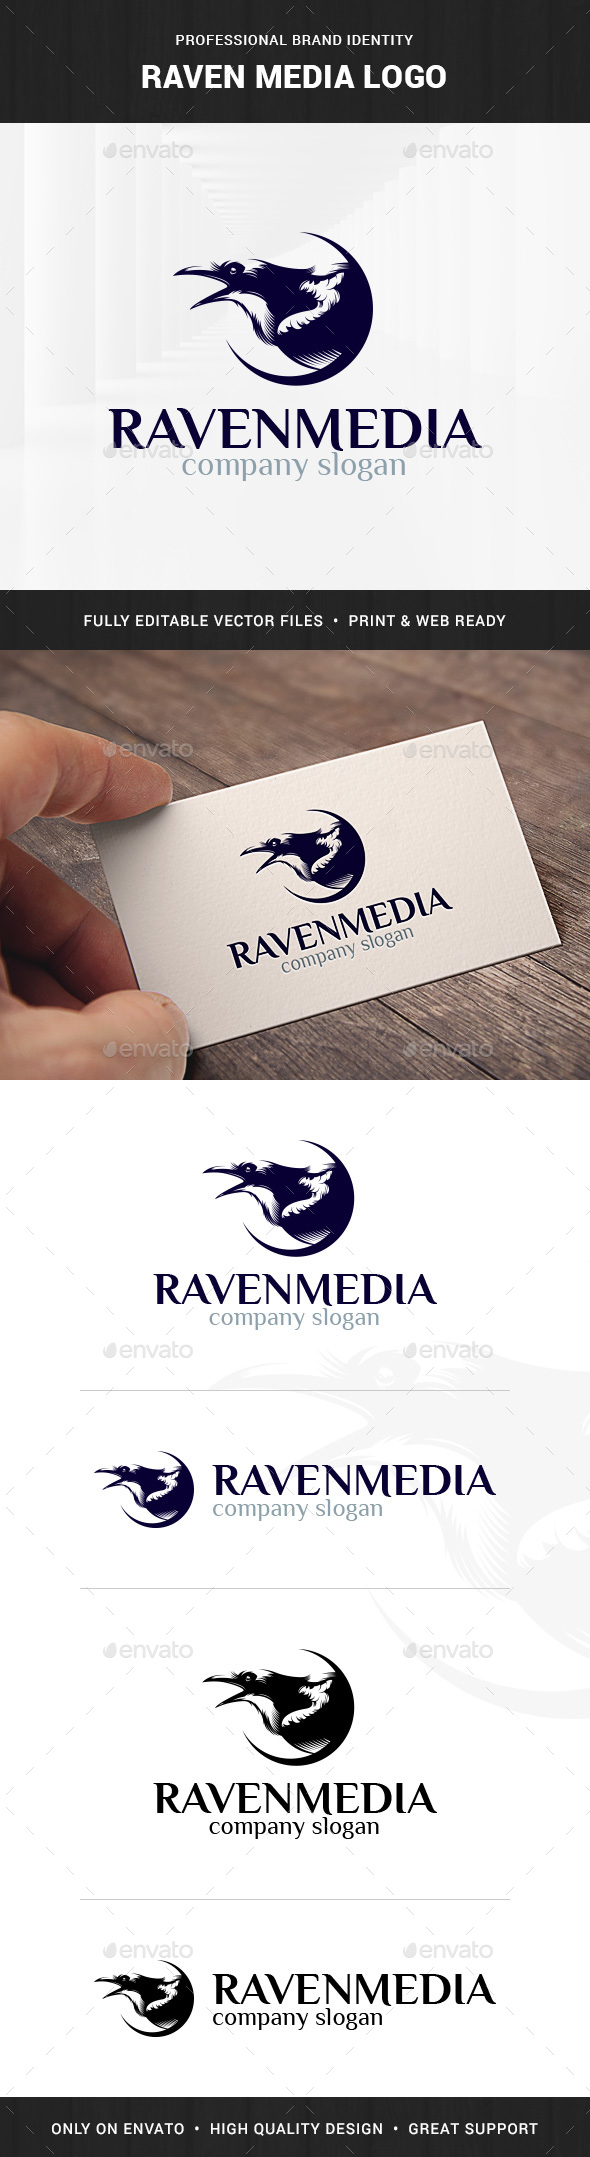 Raven Media Logo Template - Animals Logo Templates